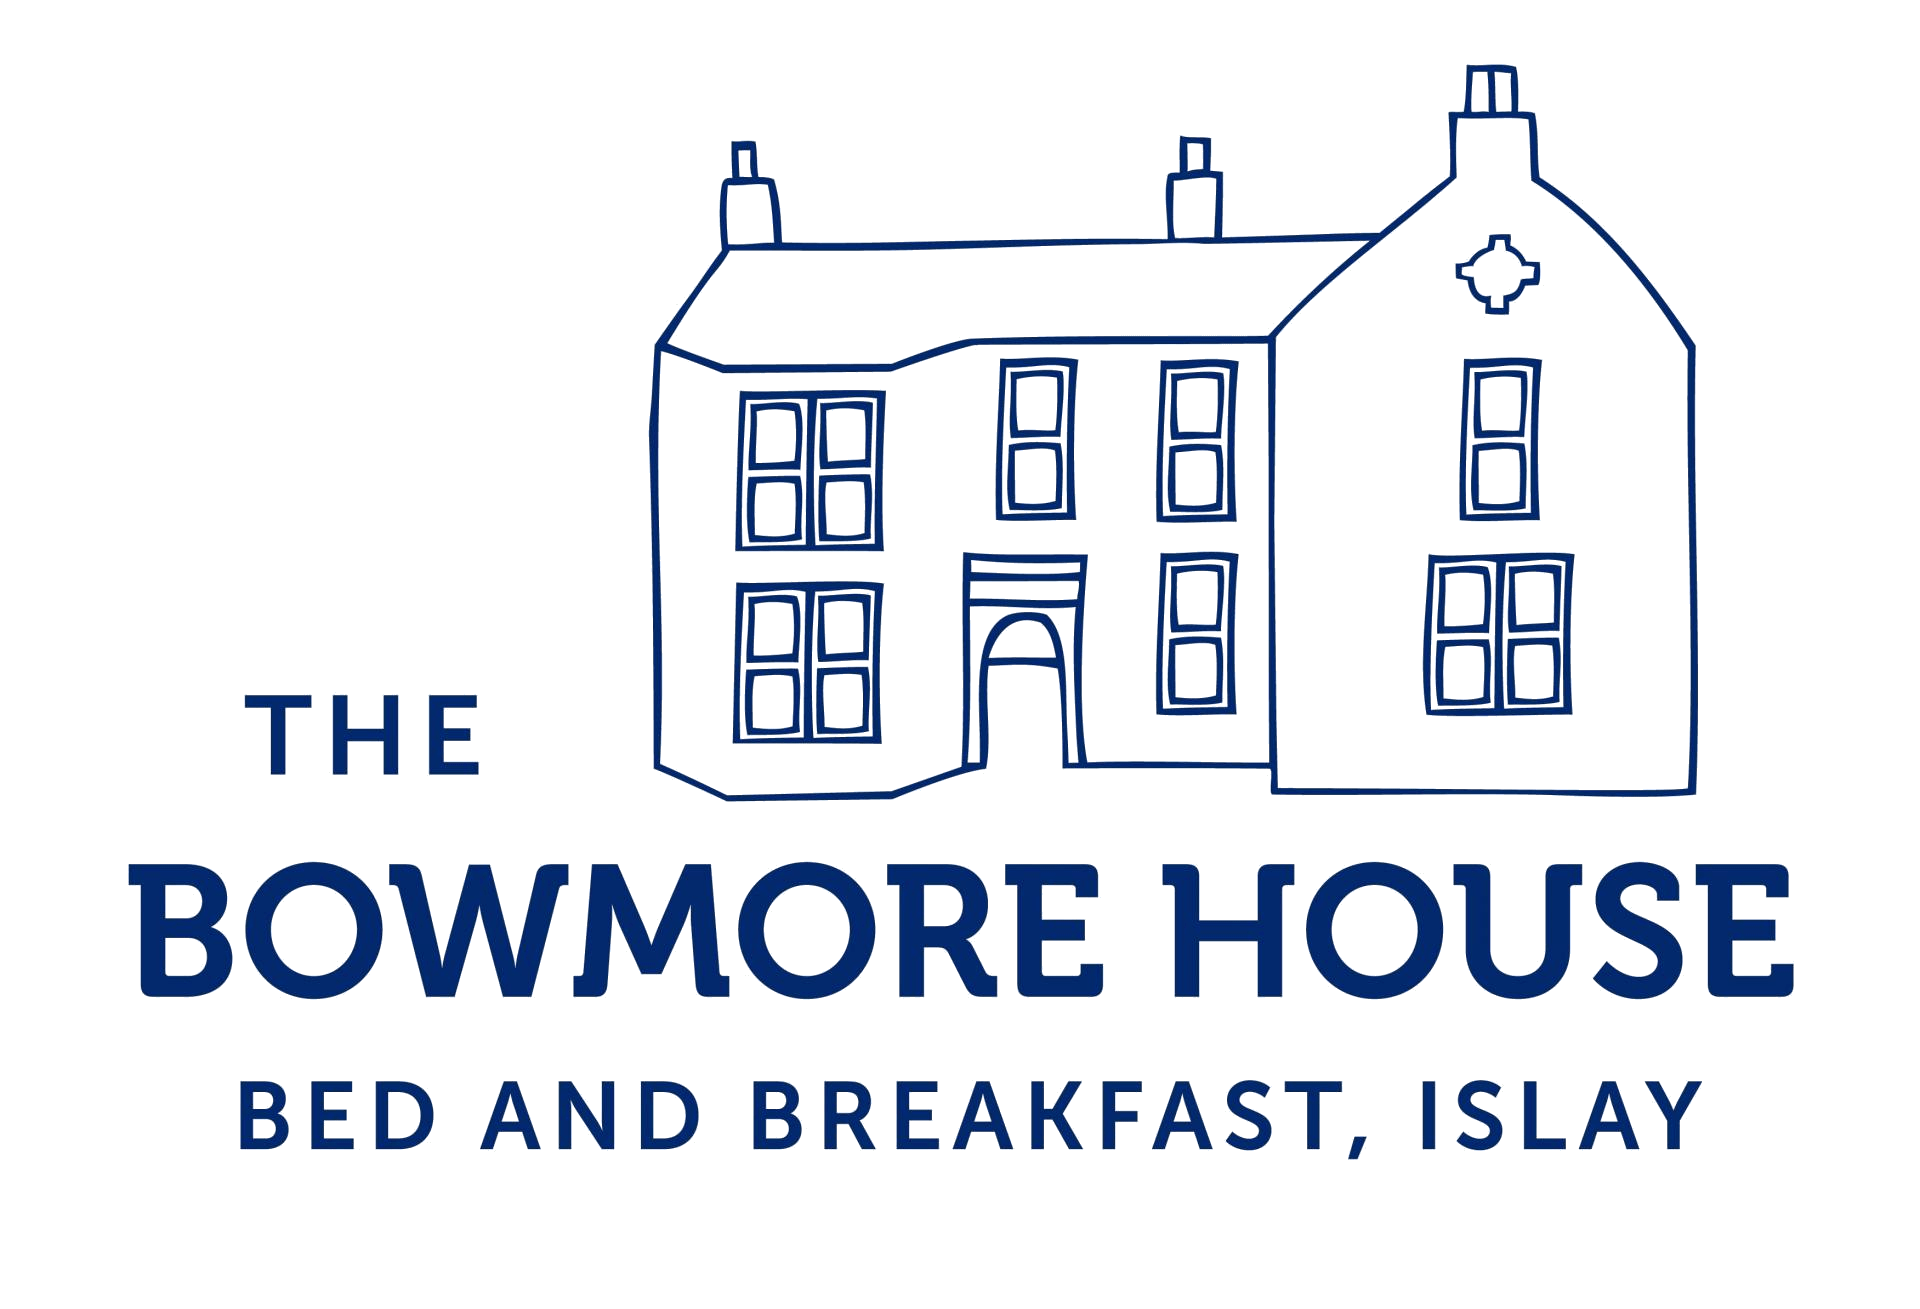 Bed And Breakfast Islay Home The Bowmore House Licensed Bed And Breakfast And Self